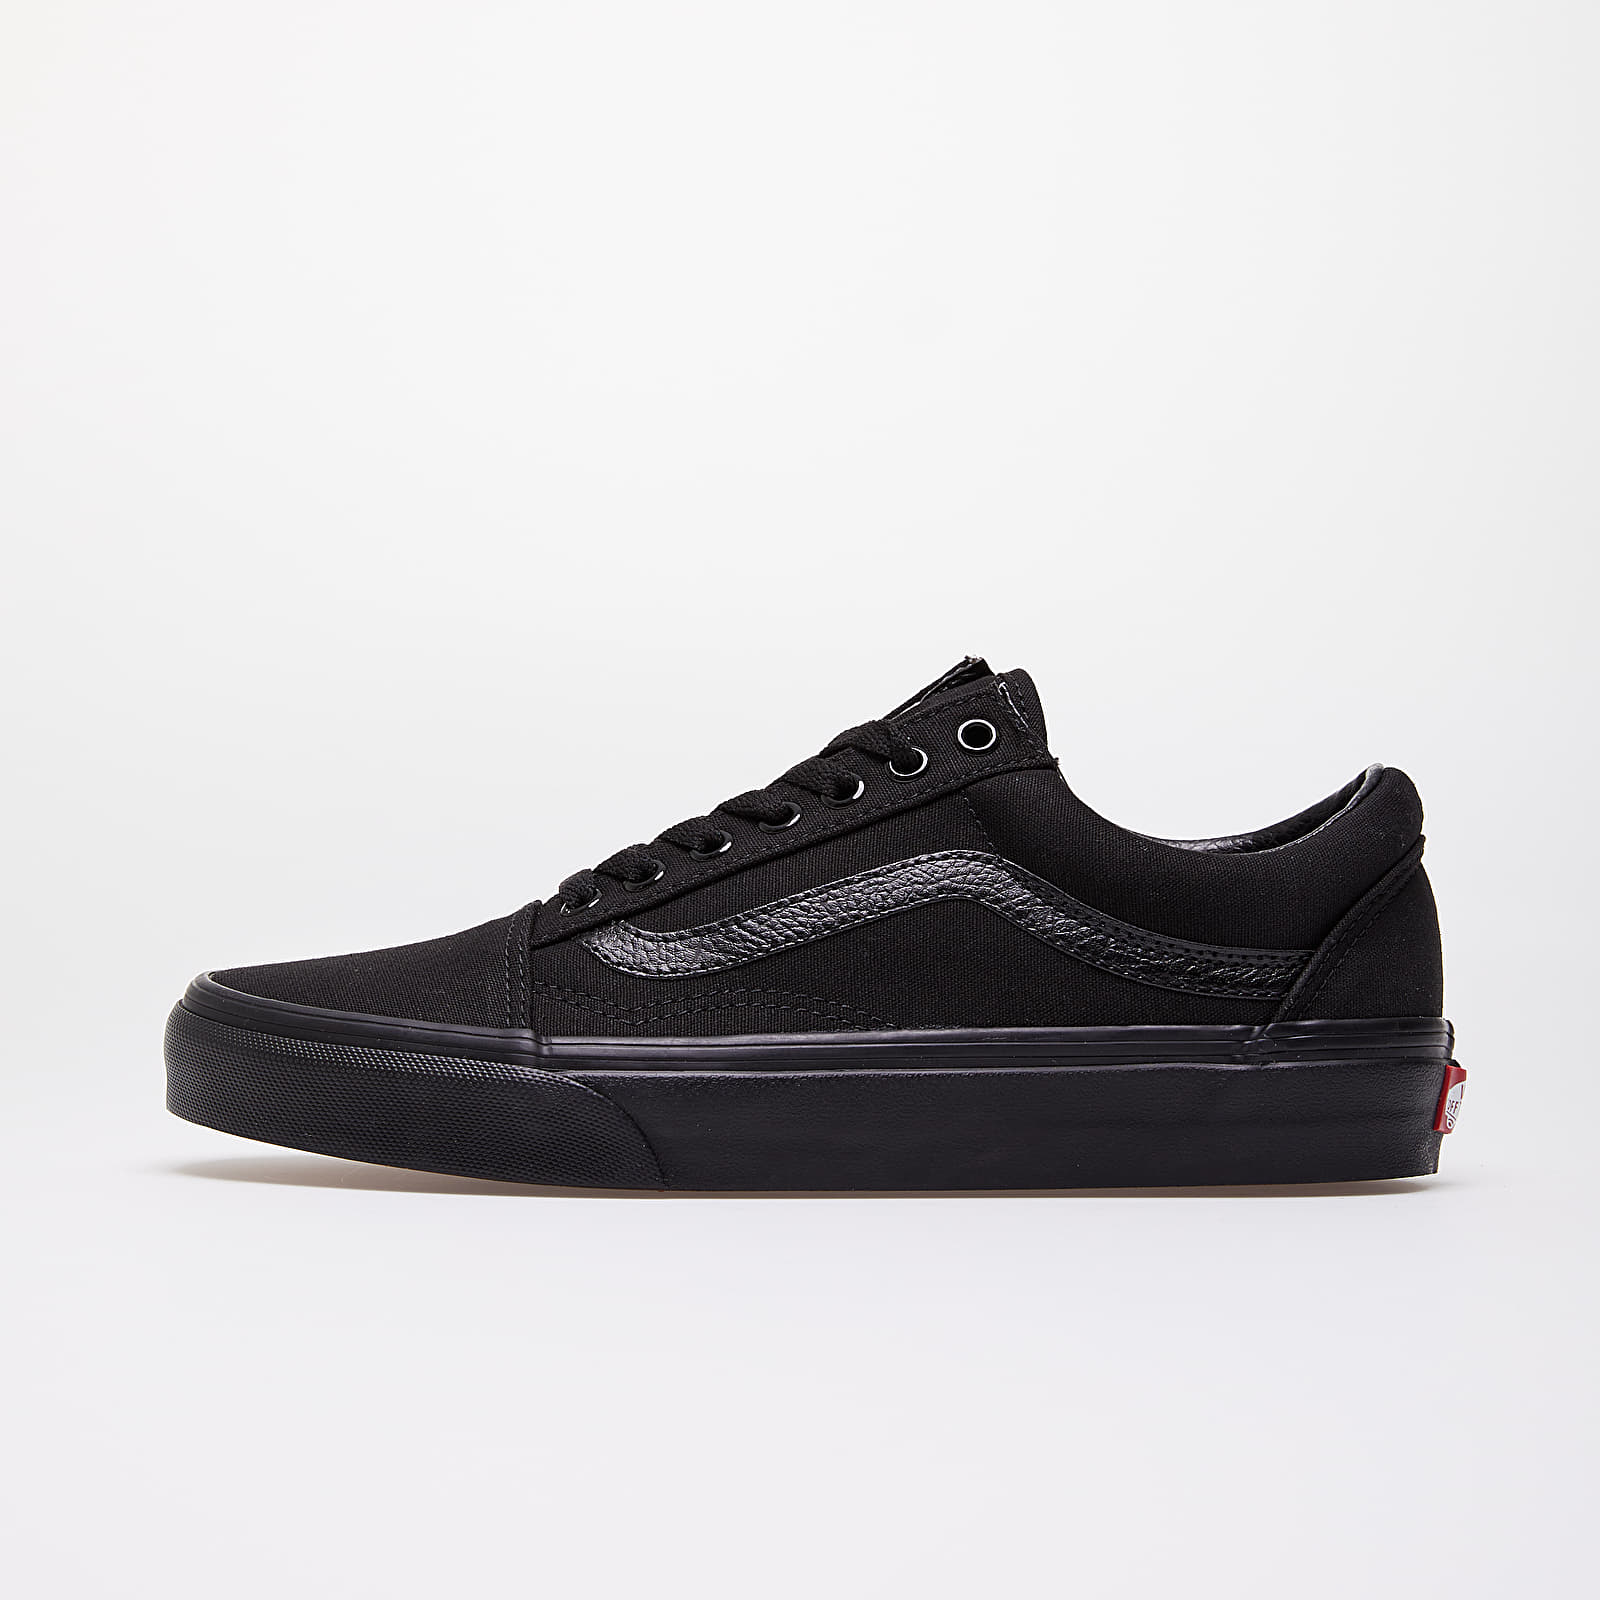 Chaussures et baskets homme Vans Old Skool Black/ Black